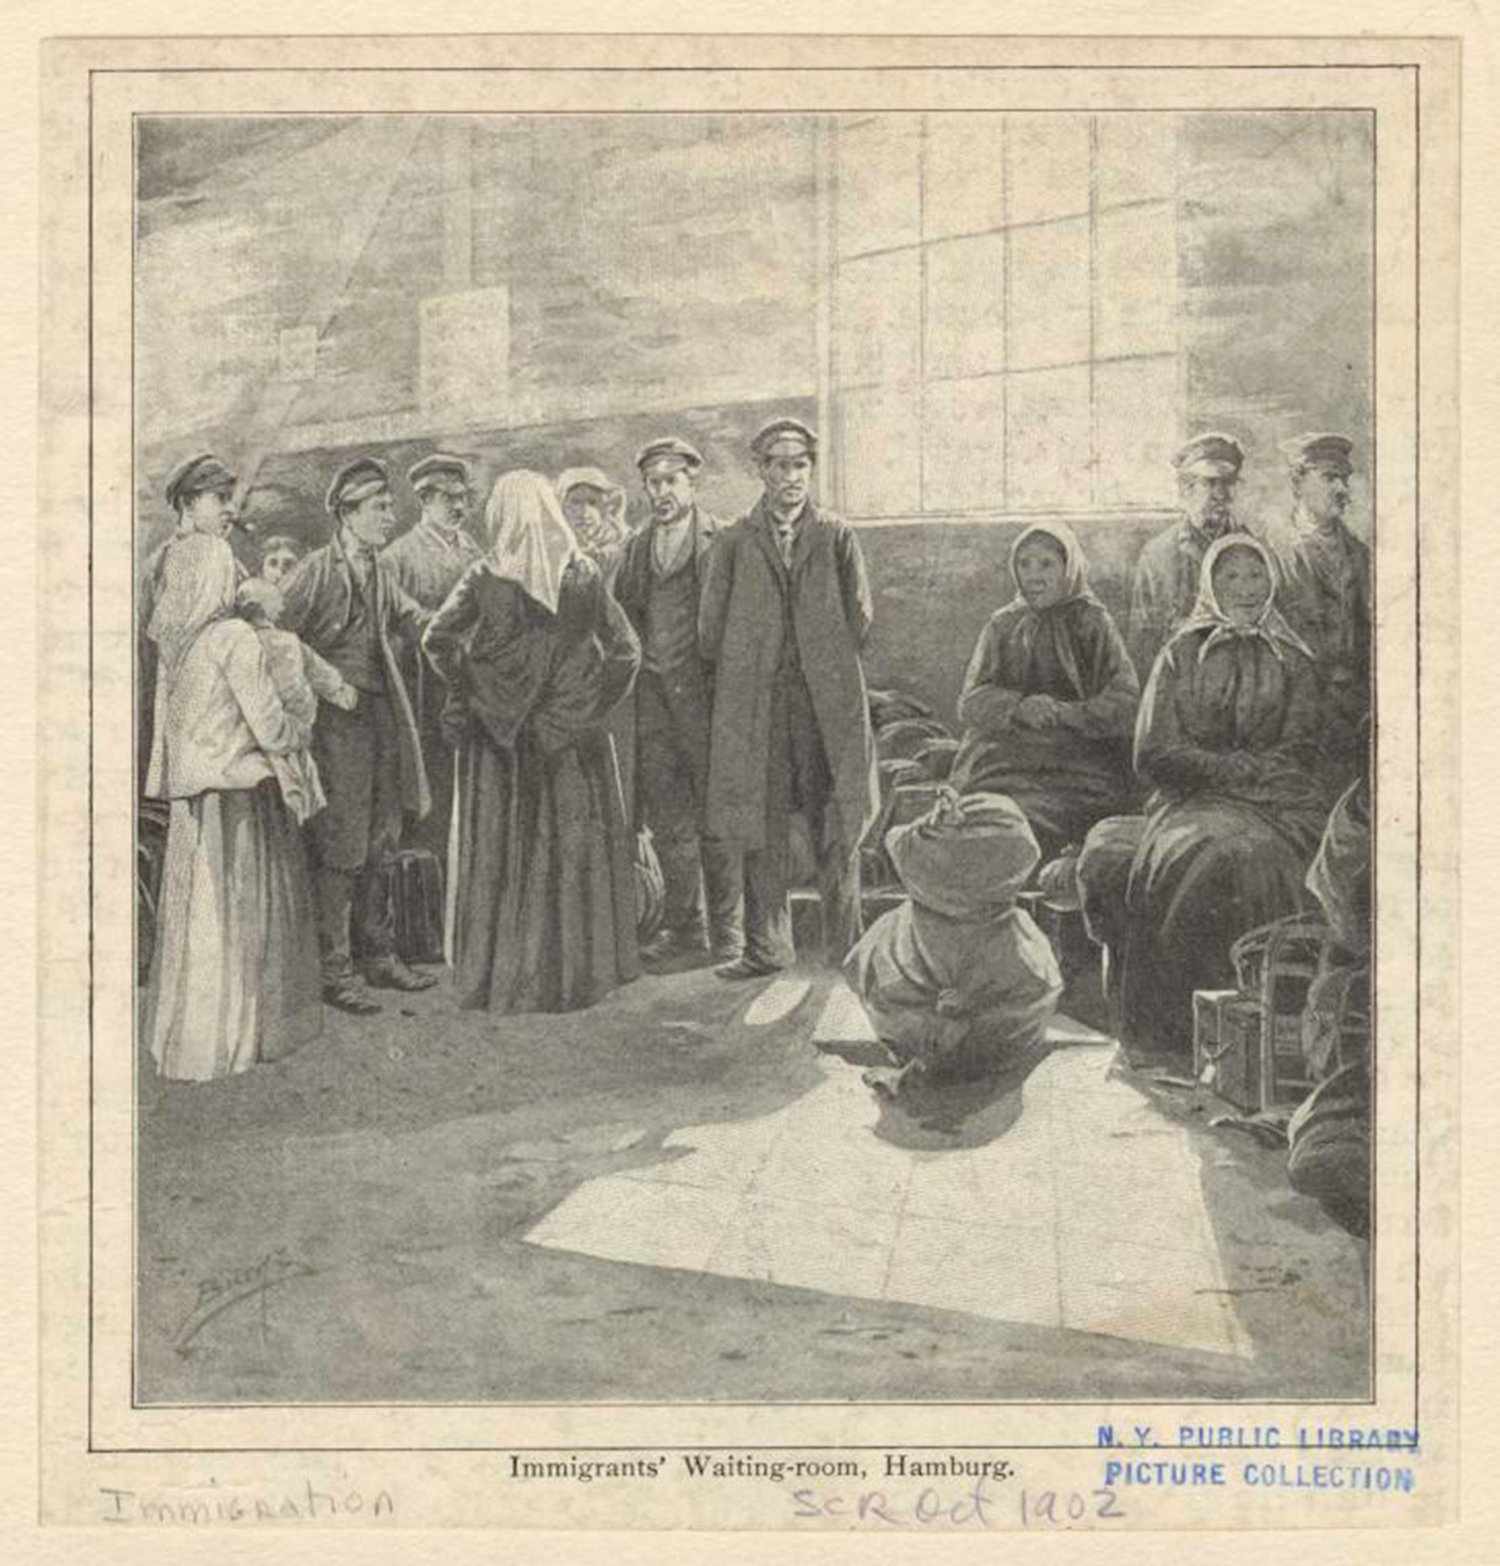 Immigrants' waiting-room, Hamburg, Burns, M. J., NYPL Digital Gallery, Public Domain Mark